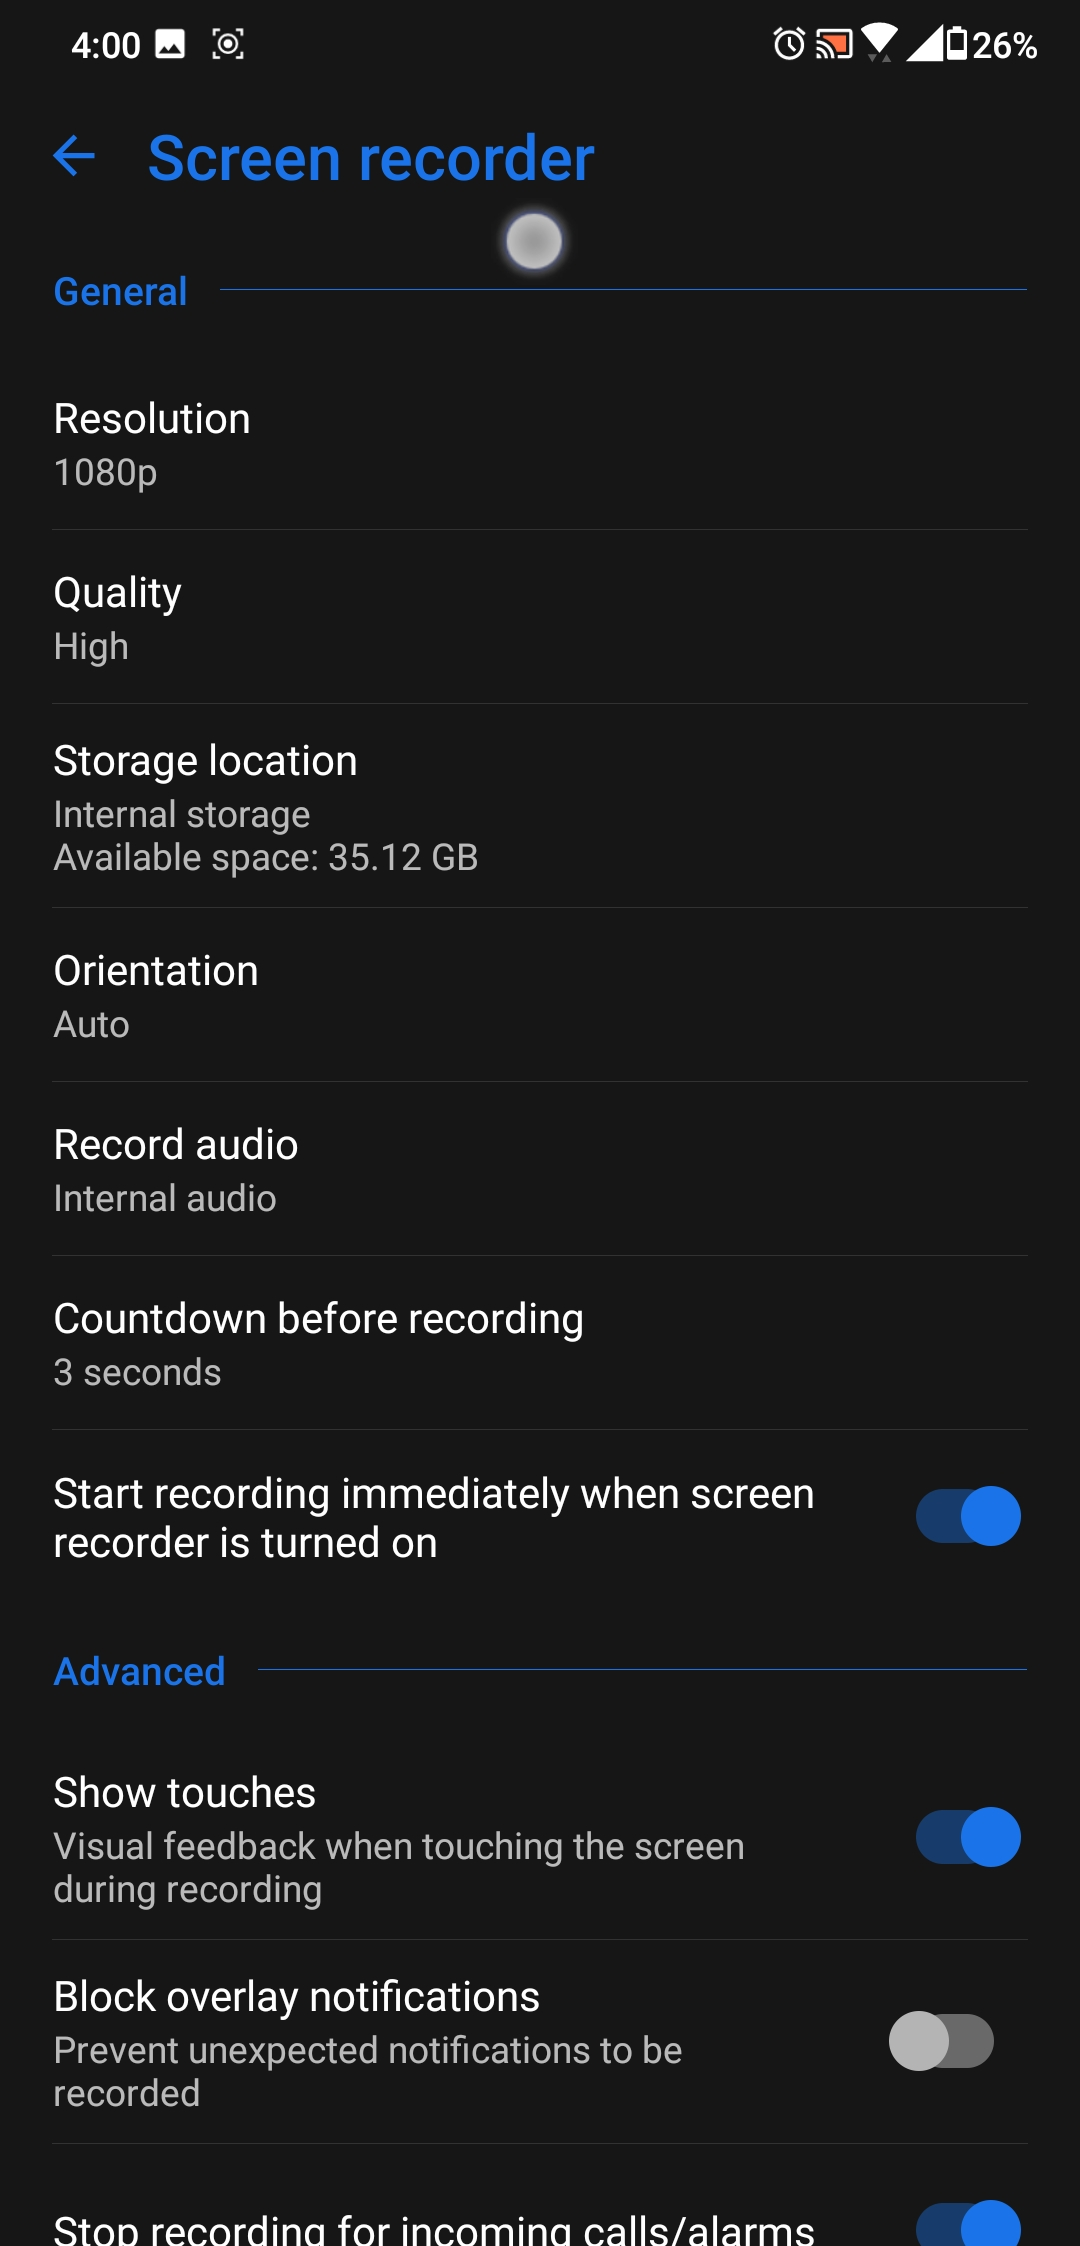 Screenshot_20200113-160046 ASUS Zenfone 5Z Android 10 Replace: New Options, Change in UI & Efficiency